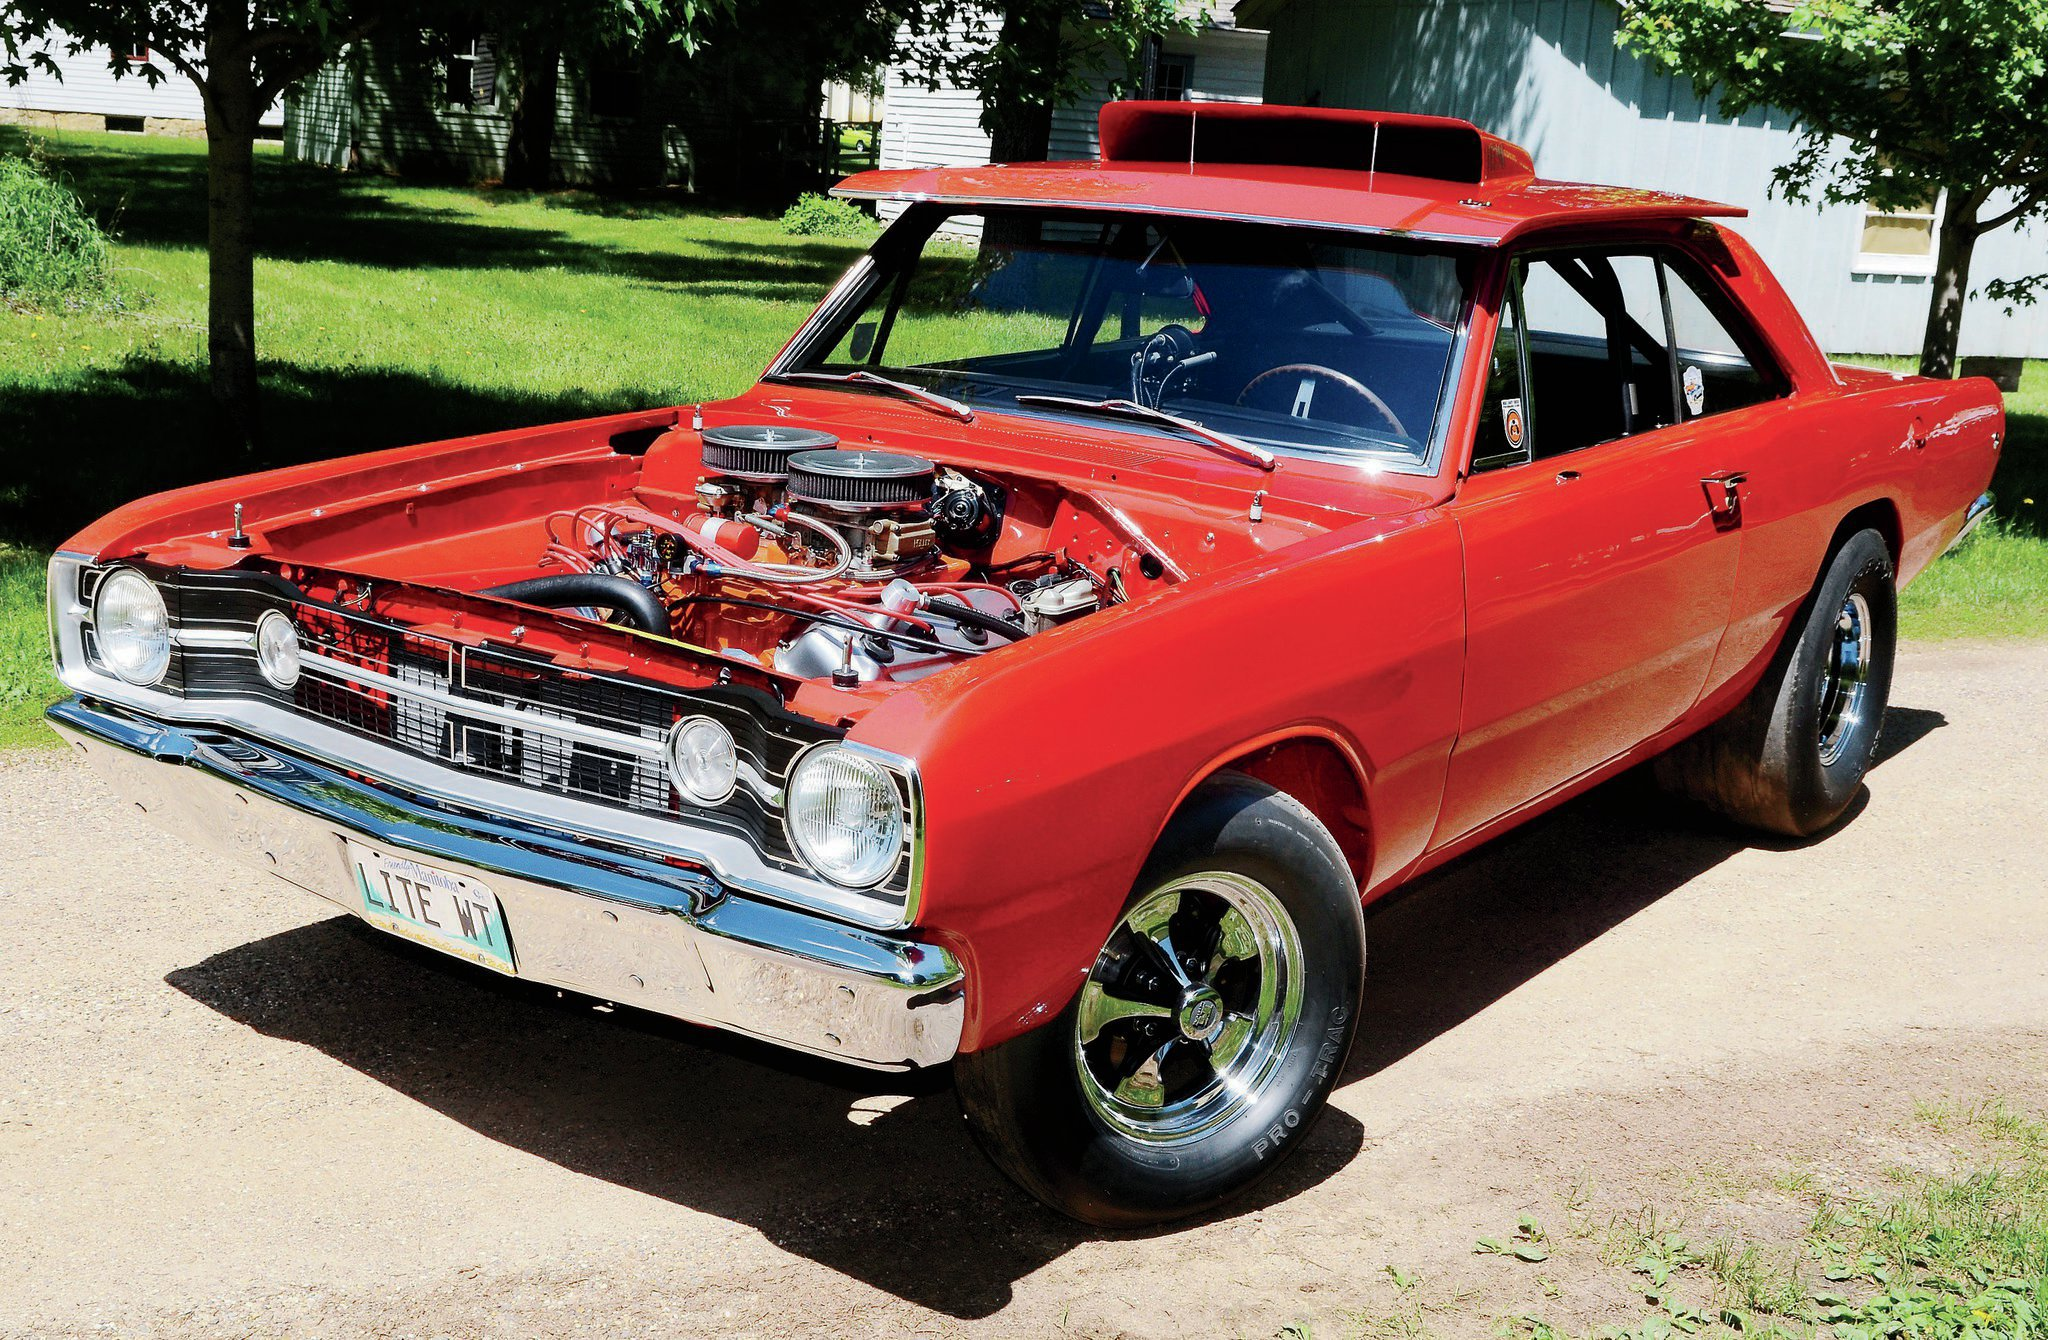 Though the Hemi Darts were intended for competition only, some wound up slugging it out on the streets. Daryl Klassen has taken a former show car and restored it as a fat-tired street fighter.